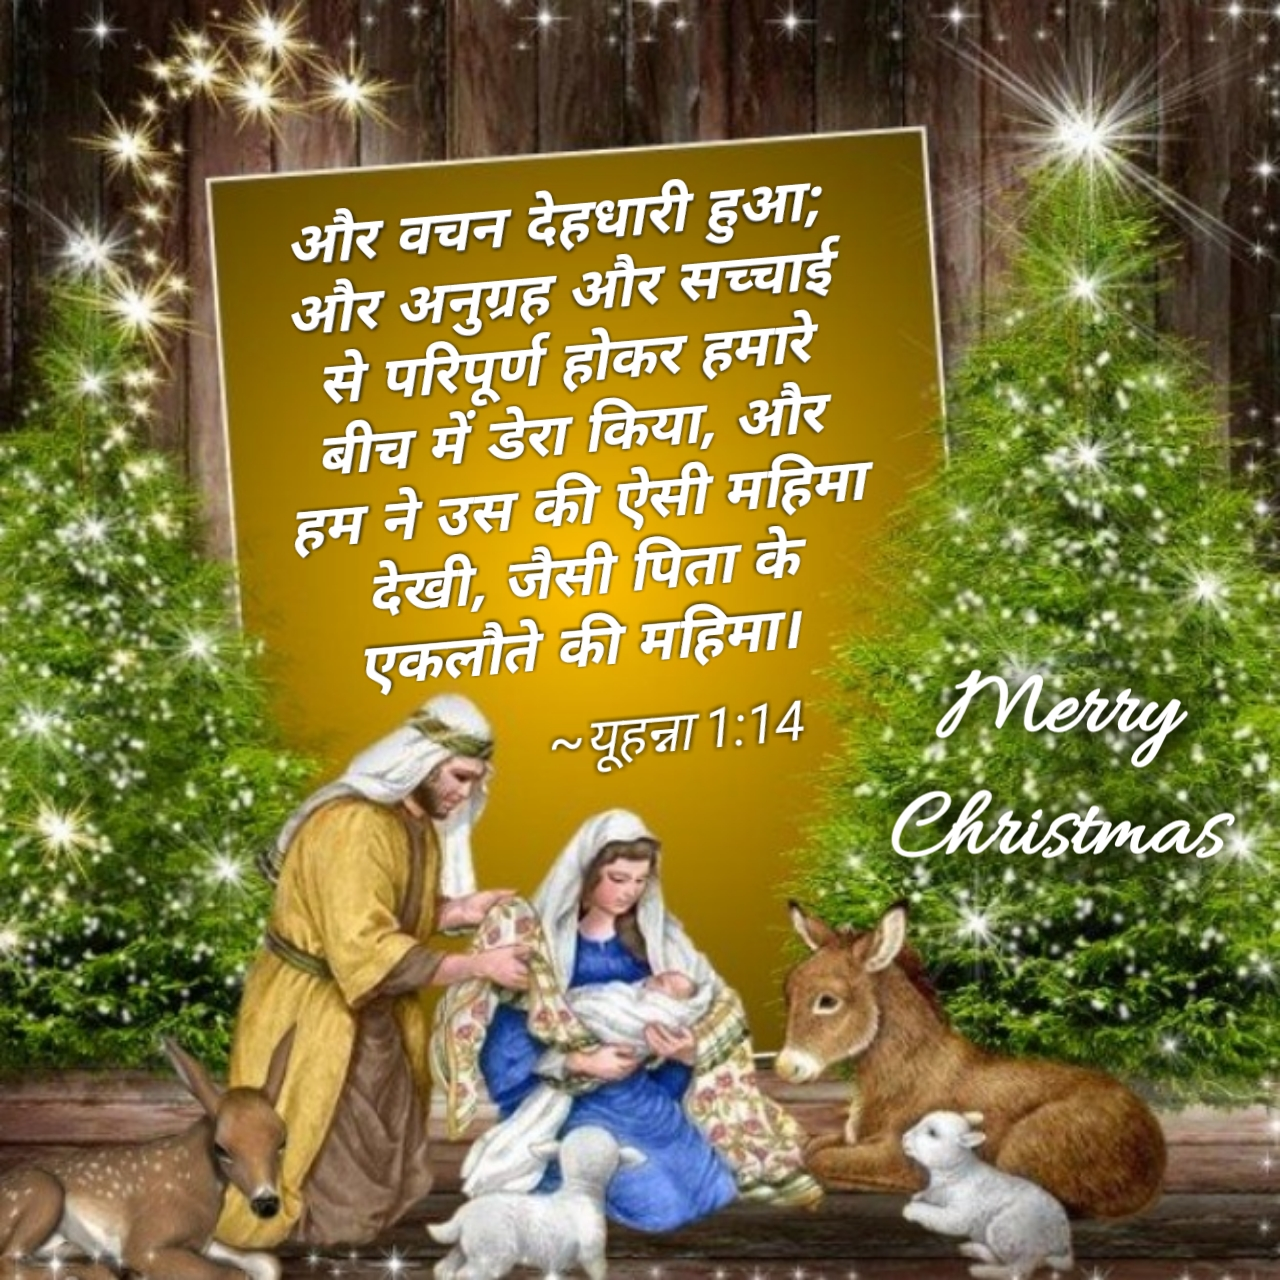 Beautiful Christmas wishes Bible Verses | Merry Christmas Quotes